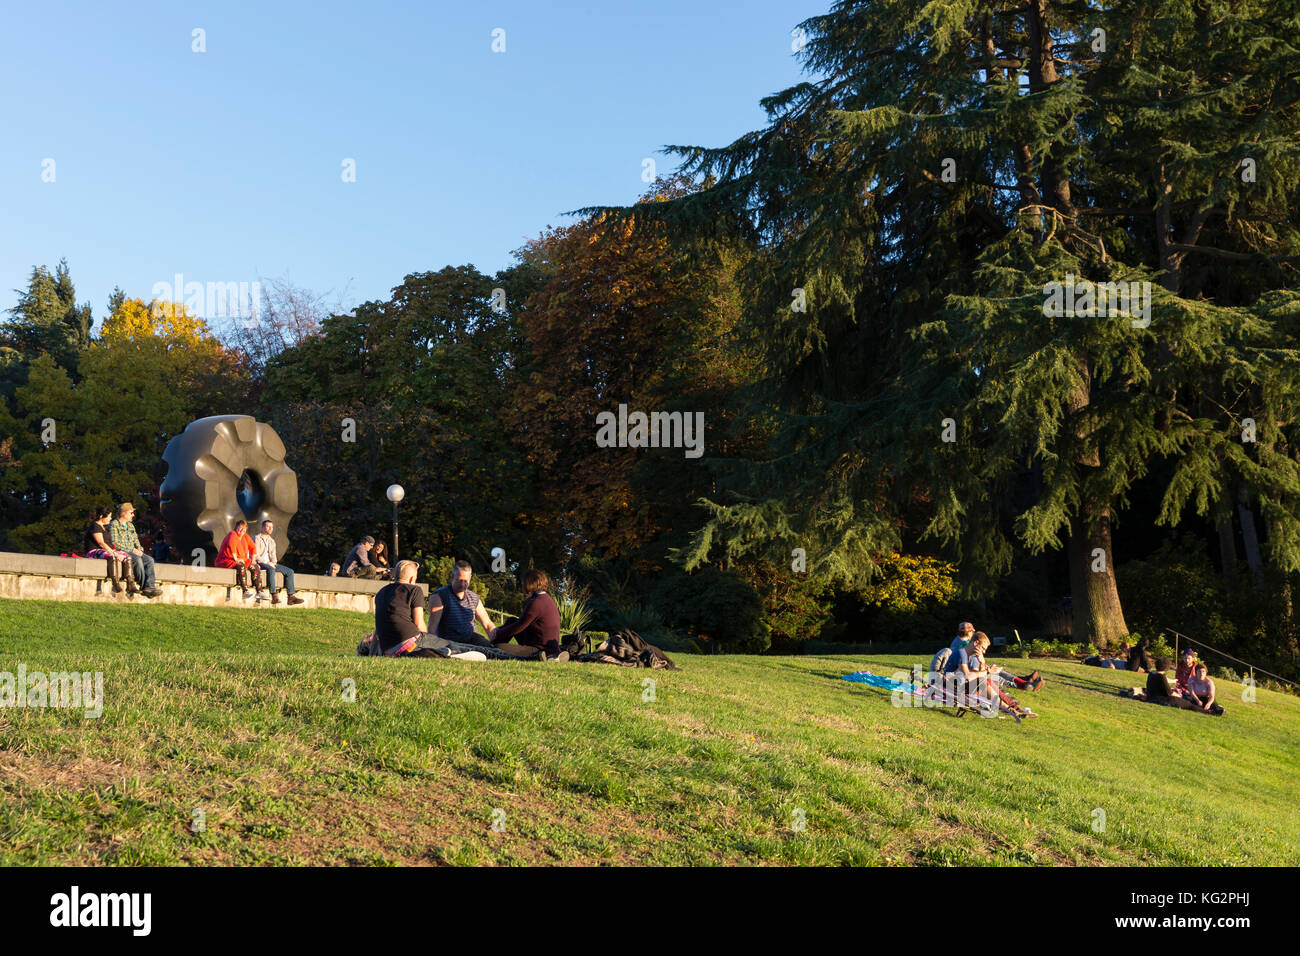 Seattle, Washington: Visitors lounge on the lawn of the Seattle Asian Art Museum at Volunteer Park during a warm - Stock Image